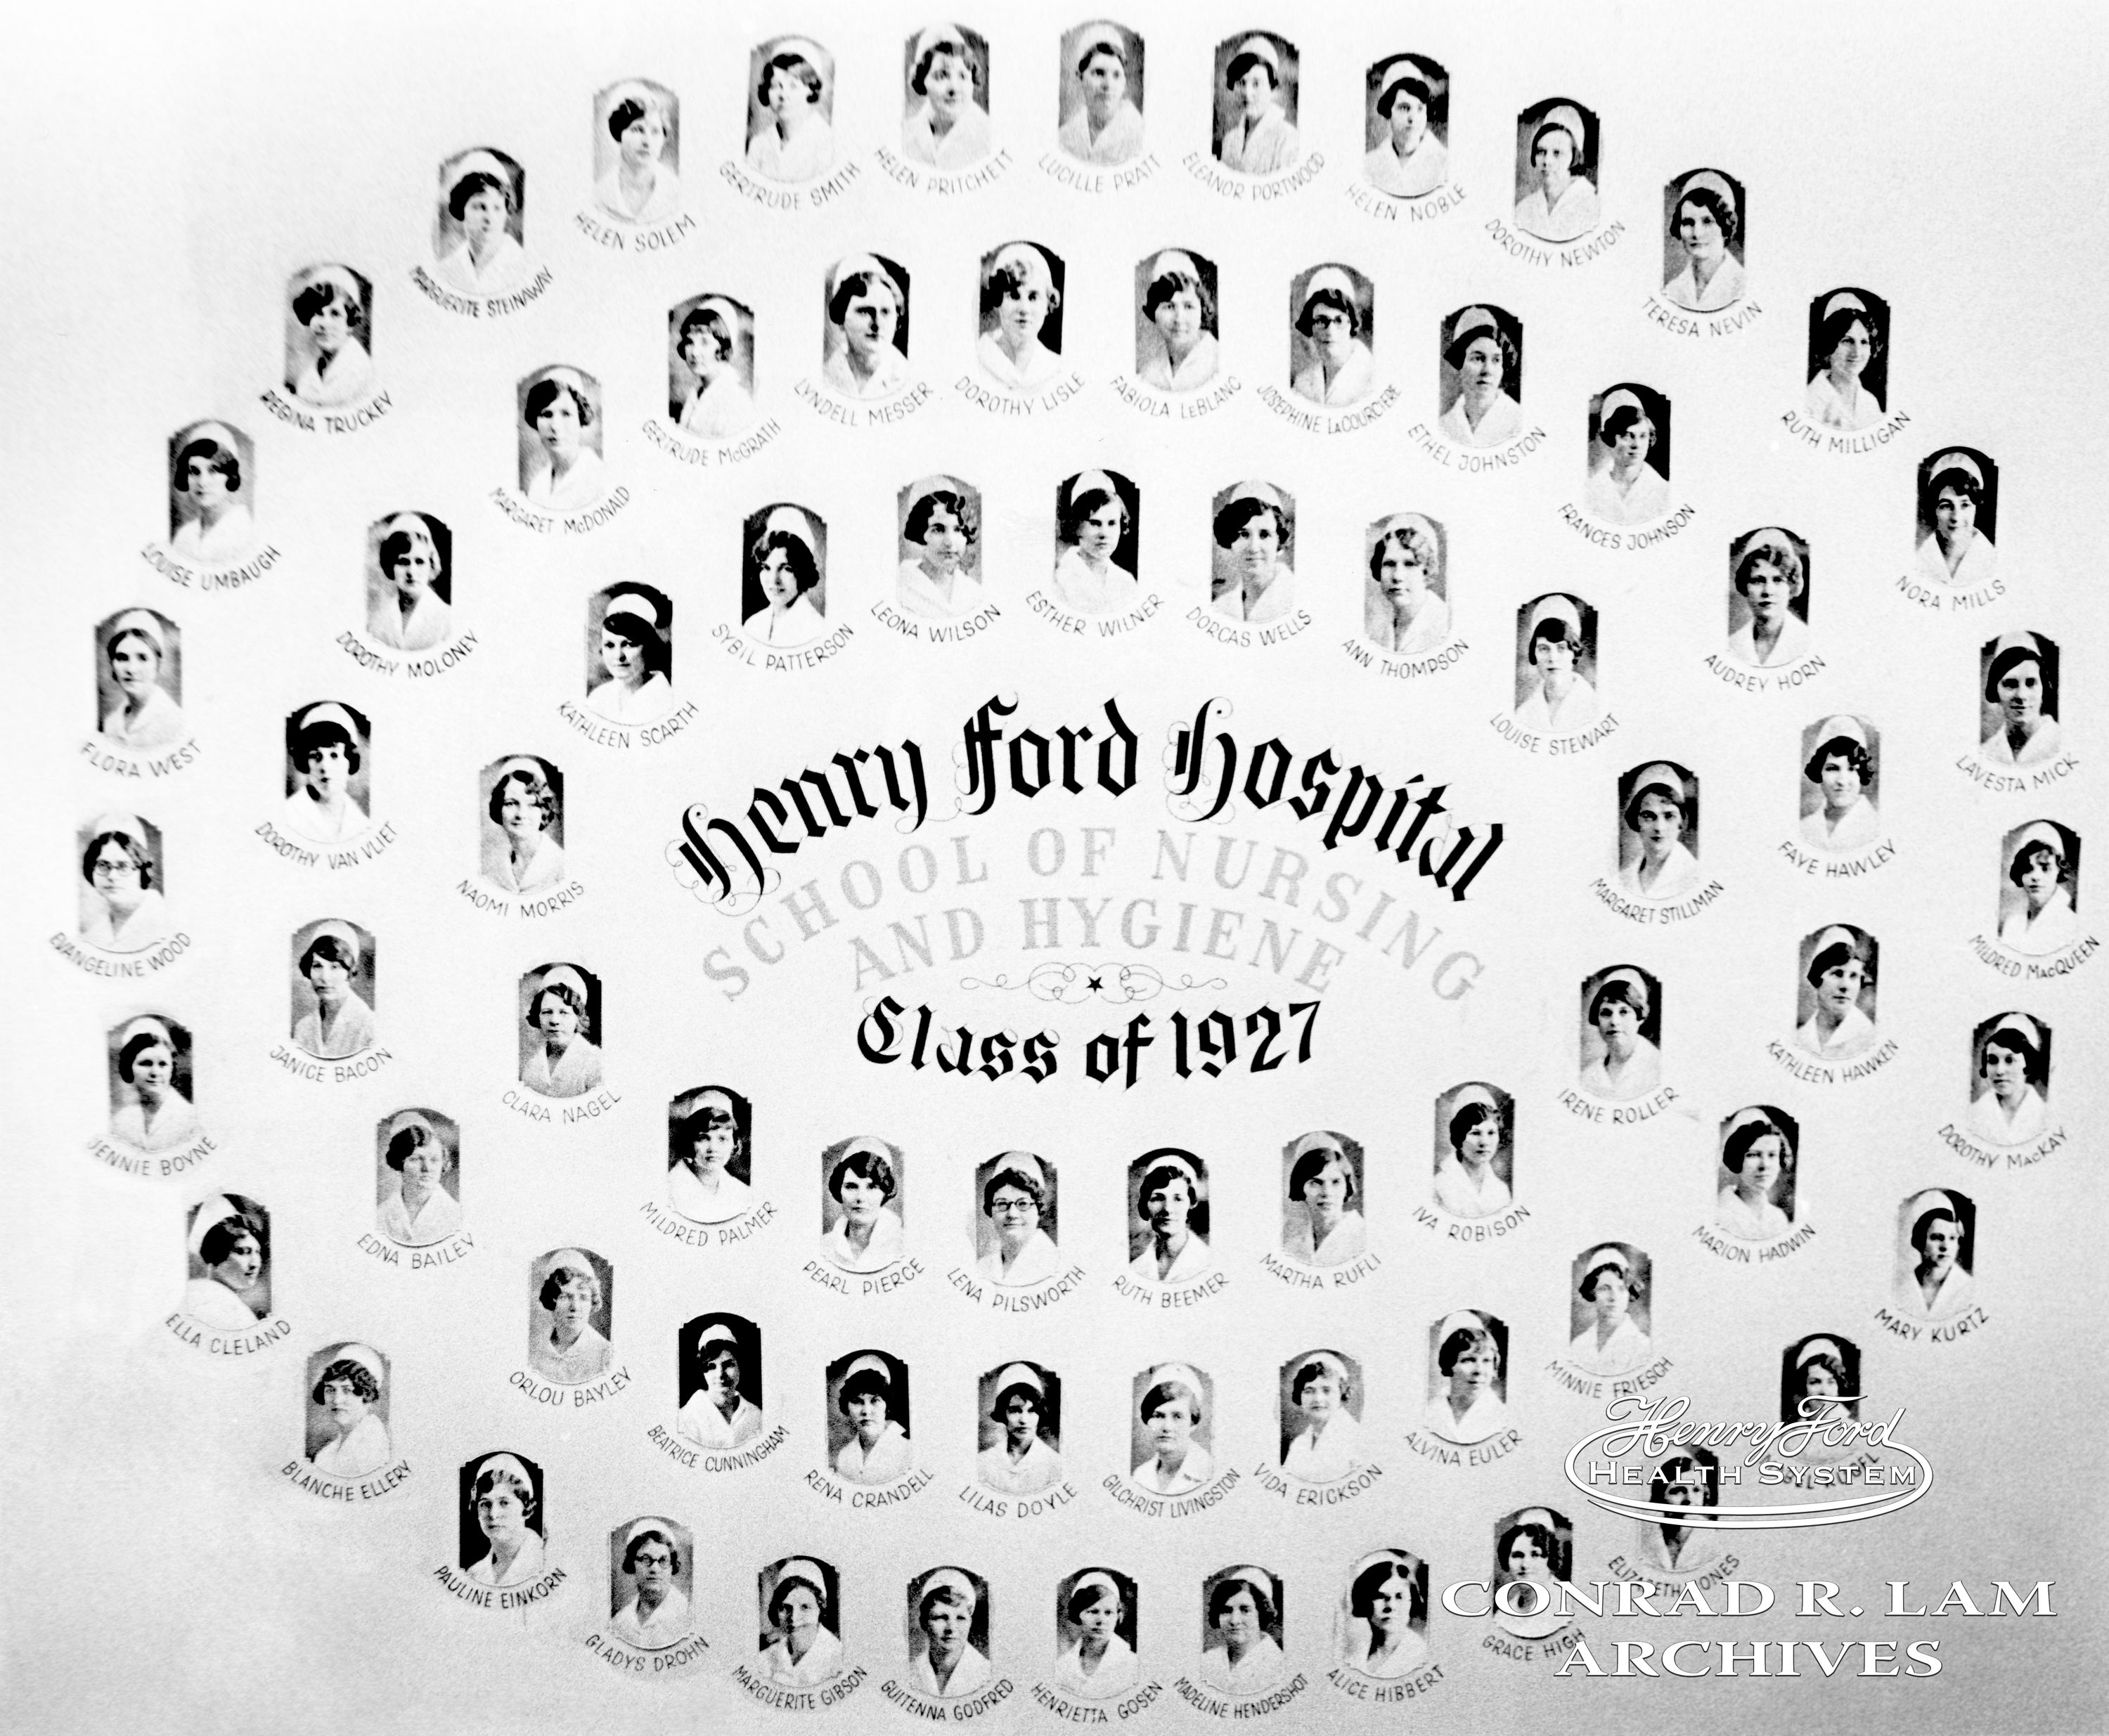 patient care doc in the d henry ford hospital school of nursing class of 1927